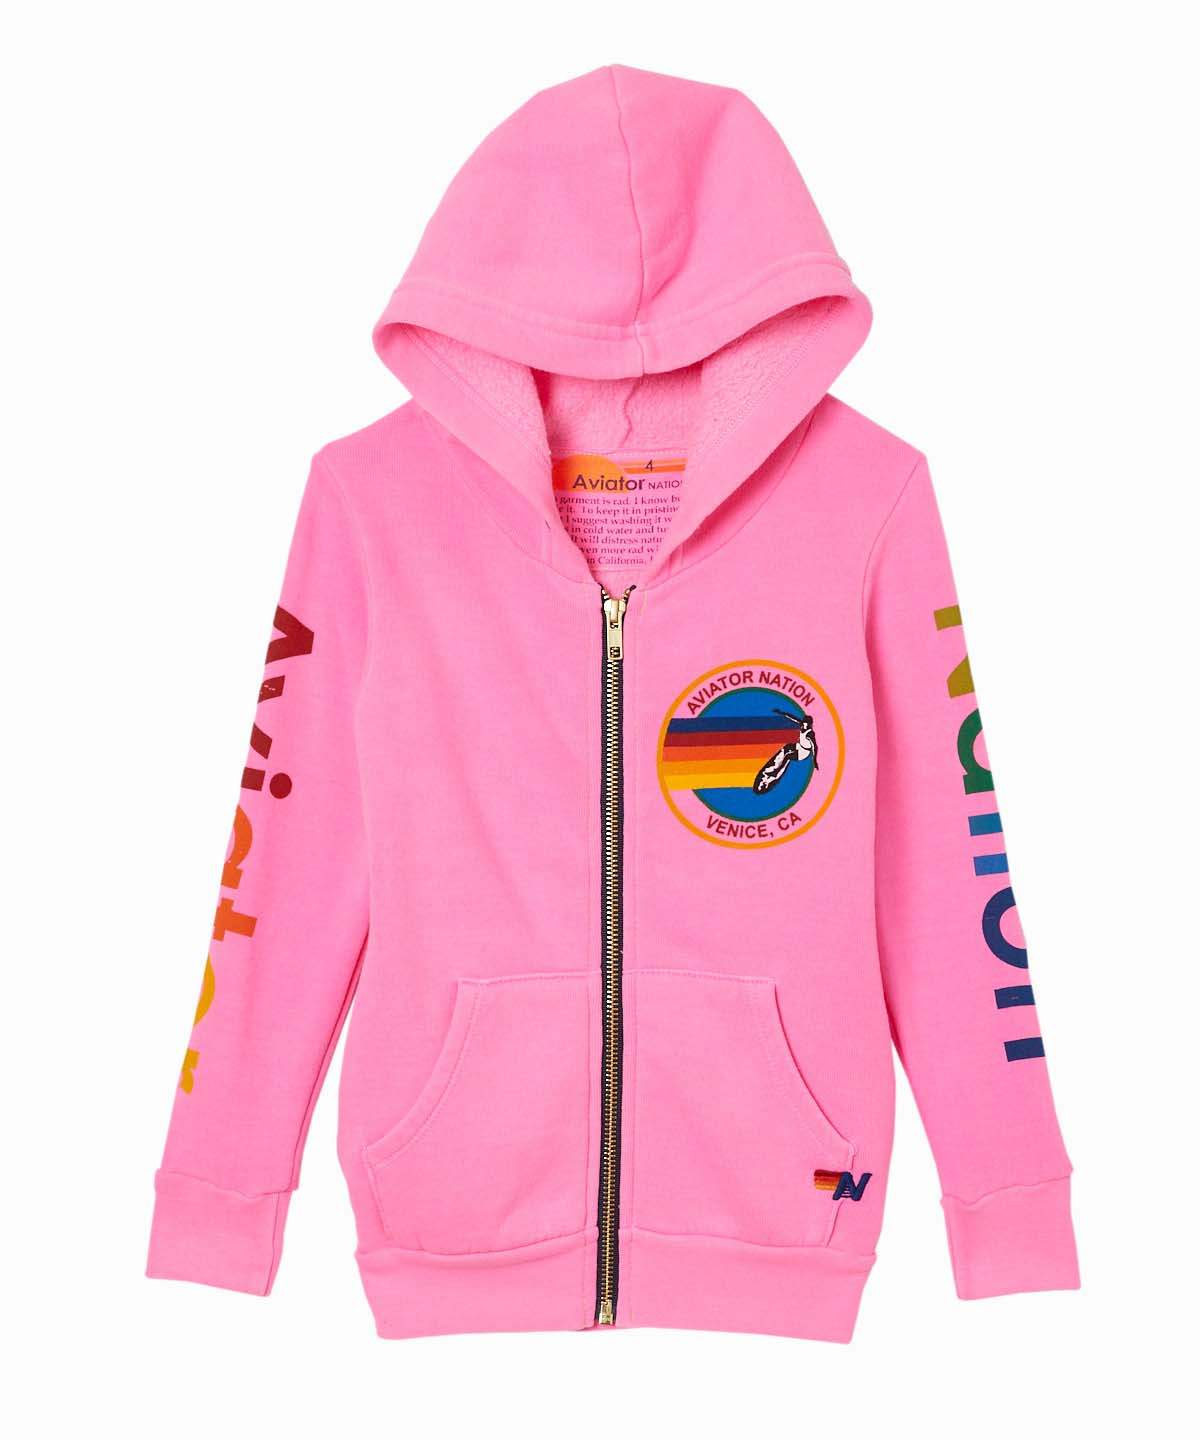 AV Logo Zip-Up Hooded Pink Sweatshirt